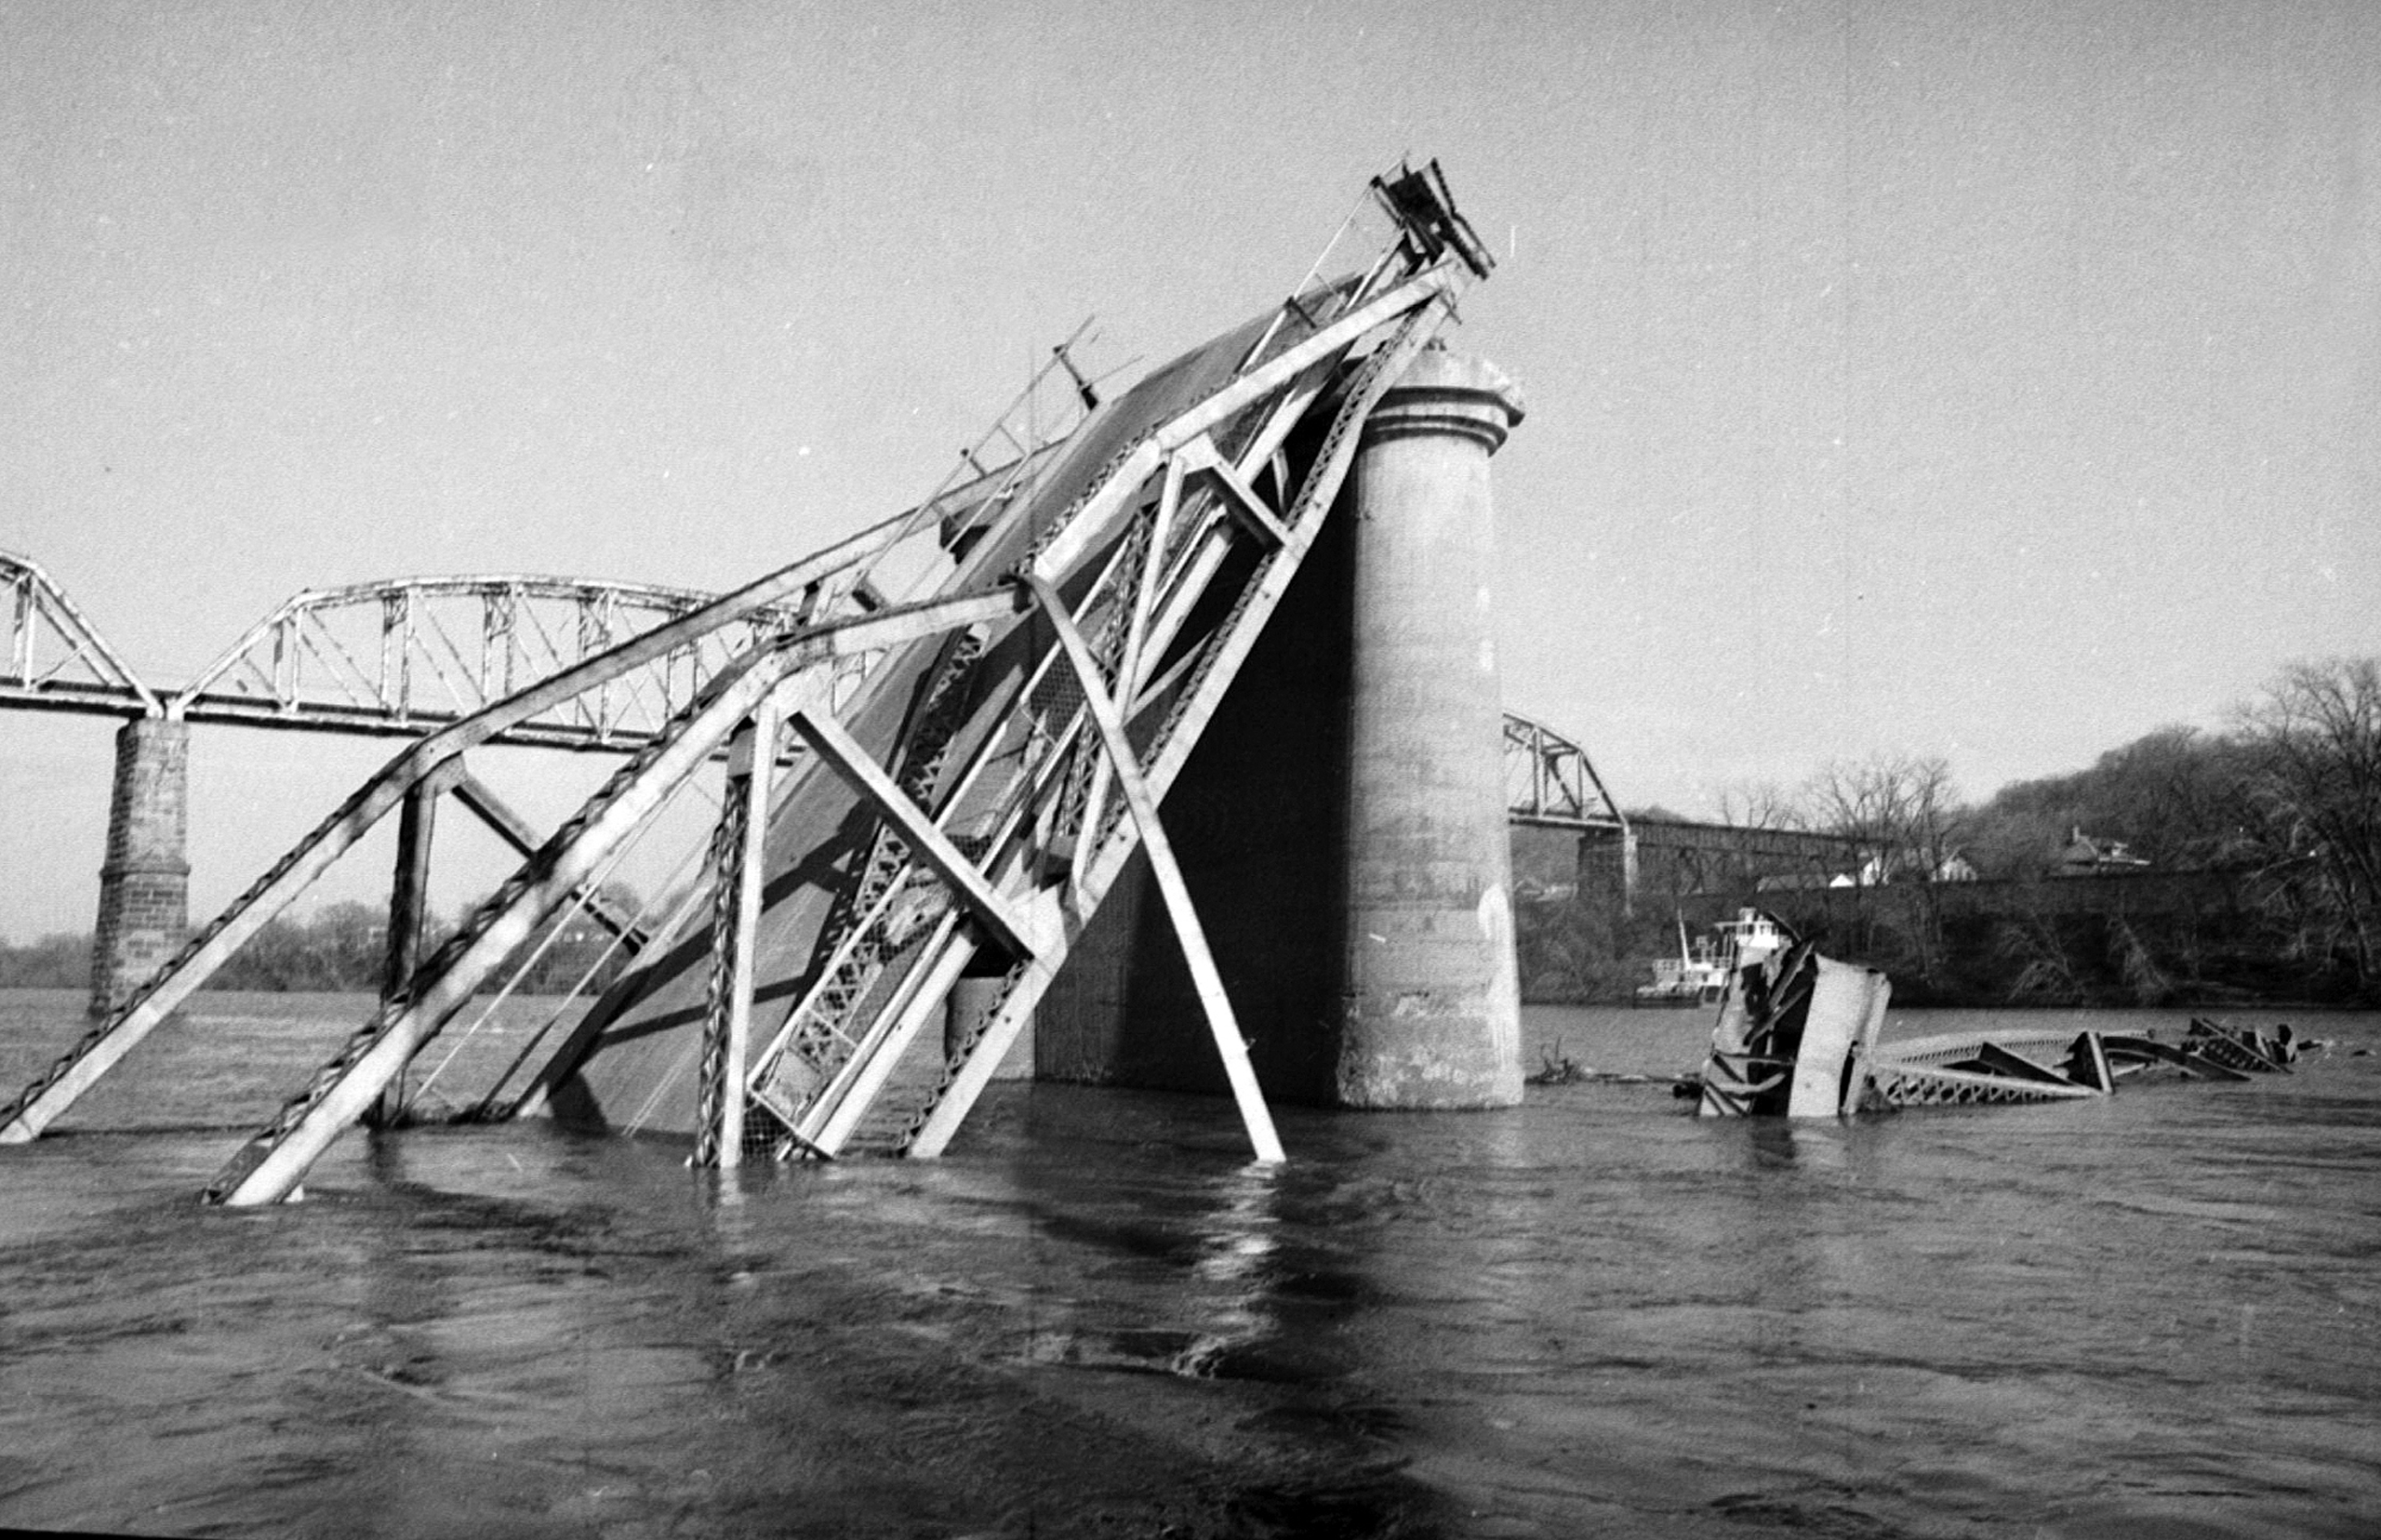 Bridge Collapses: 4 Deadliest in U.S. Over Past 50 Years | Time